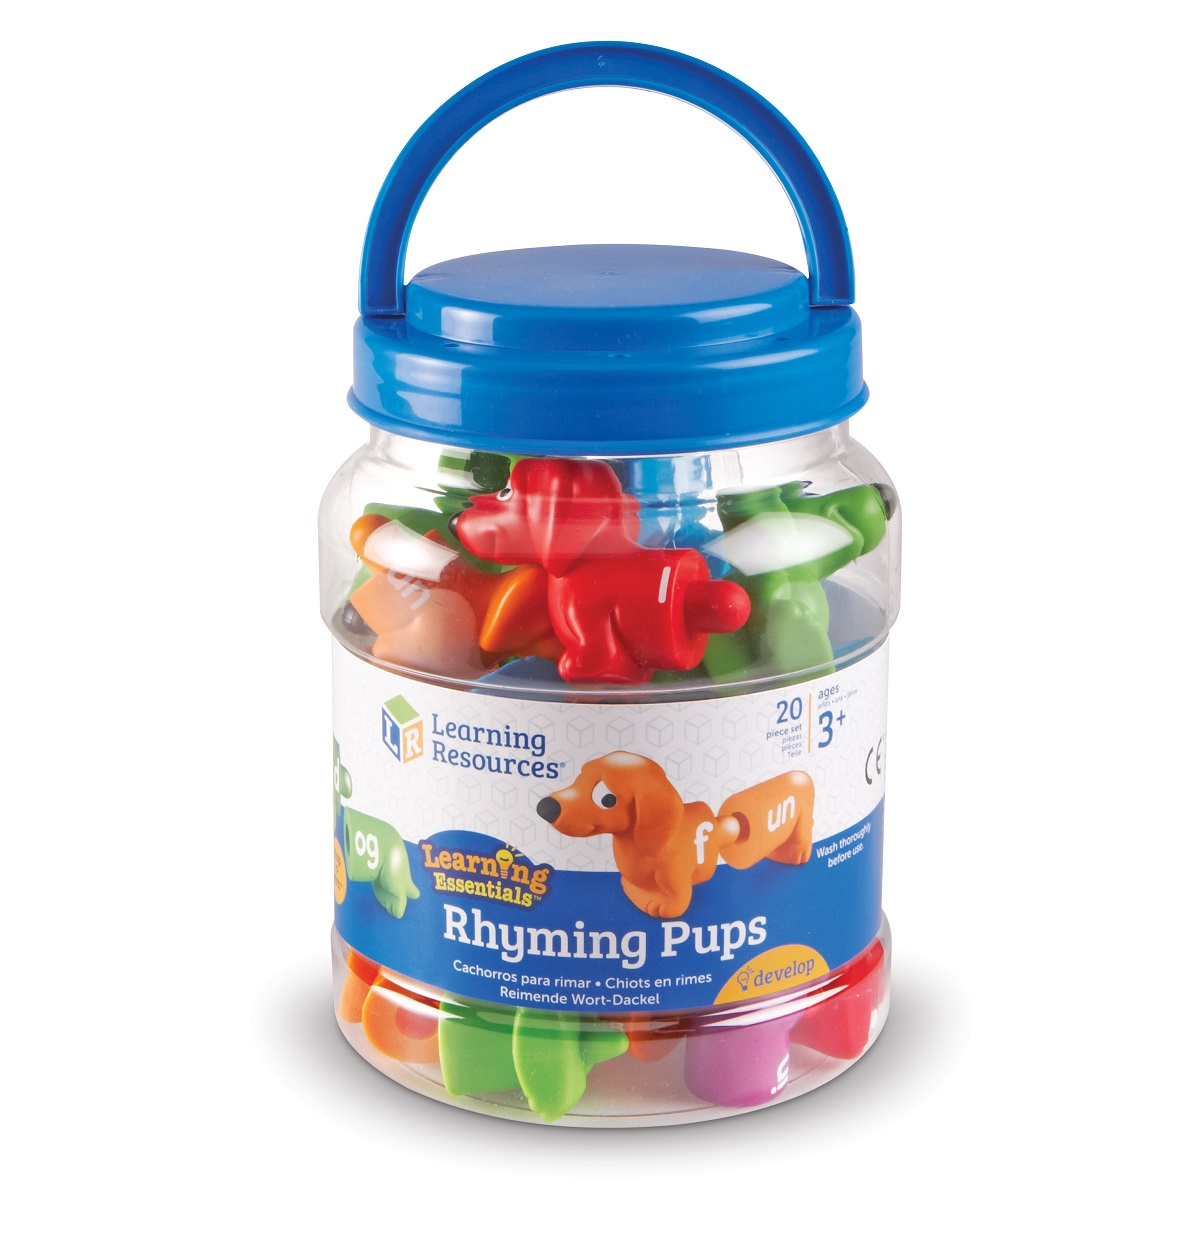 Snap n Learn Rhyming Pups sold by Gifts for little hands